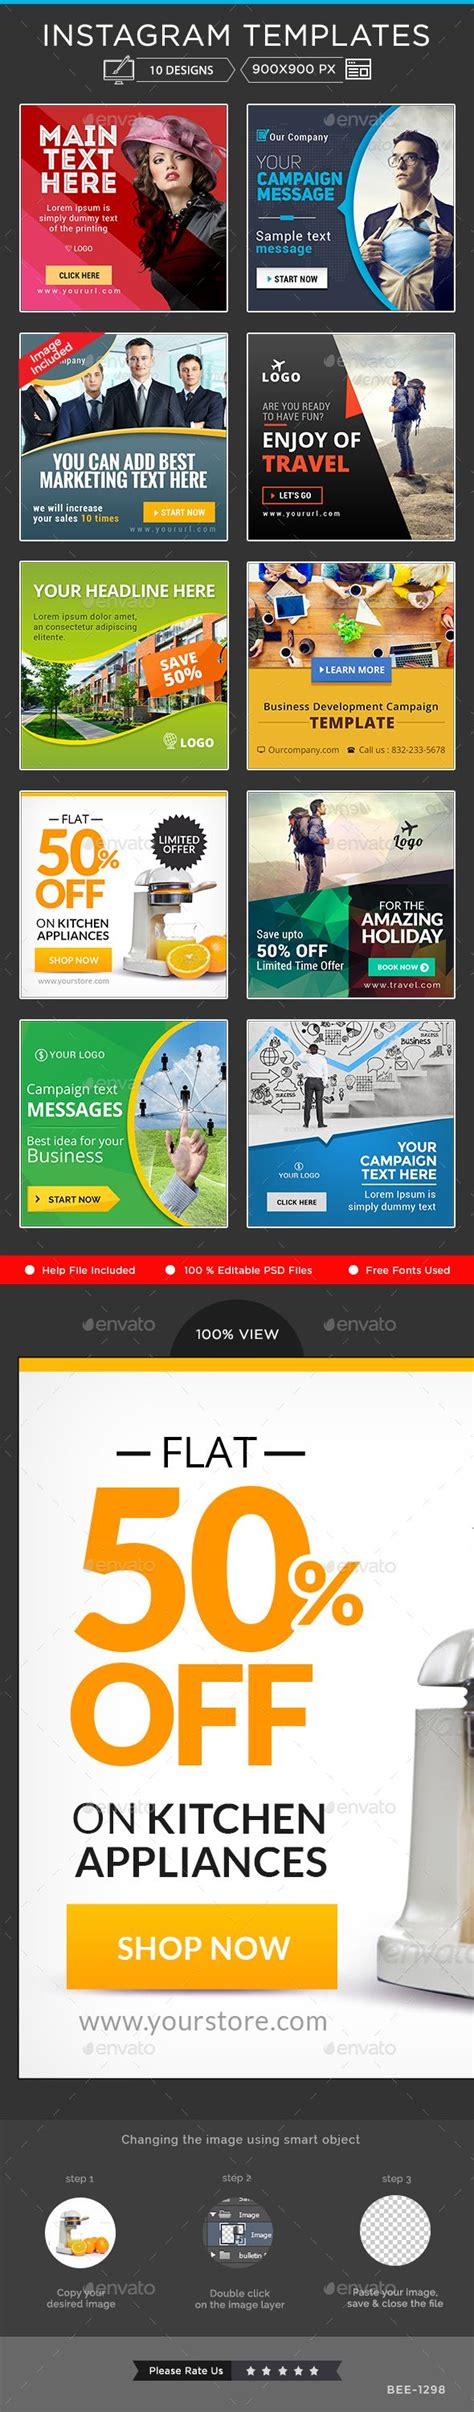 Banners Redes Sociales Template by Instagram Banner Templates 10 Designs Redes Sociales